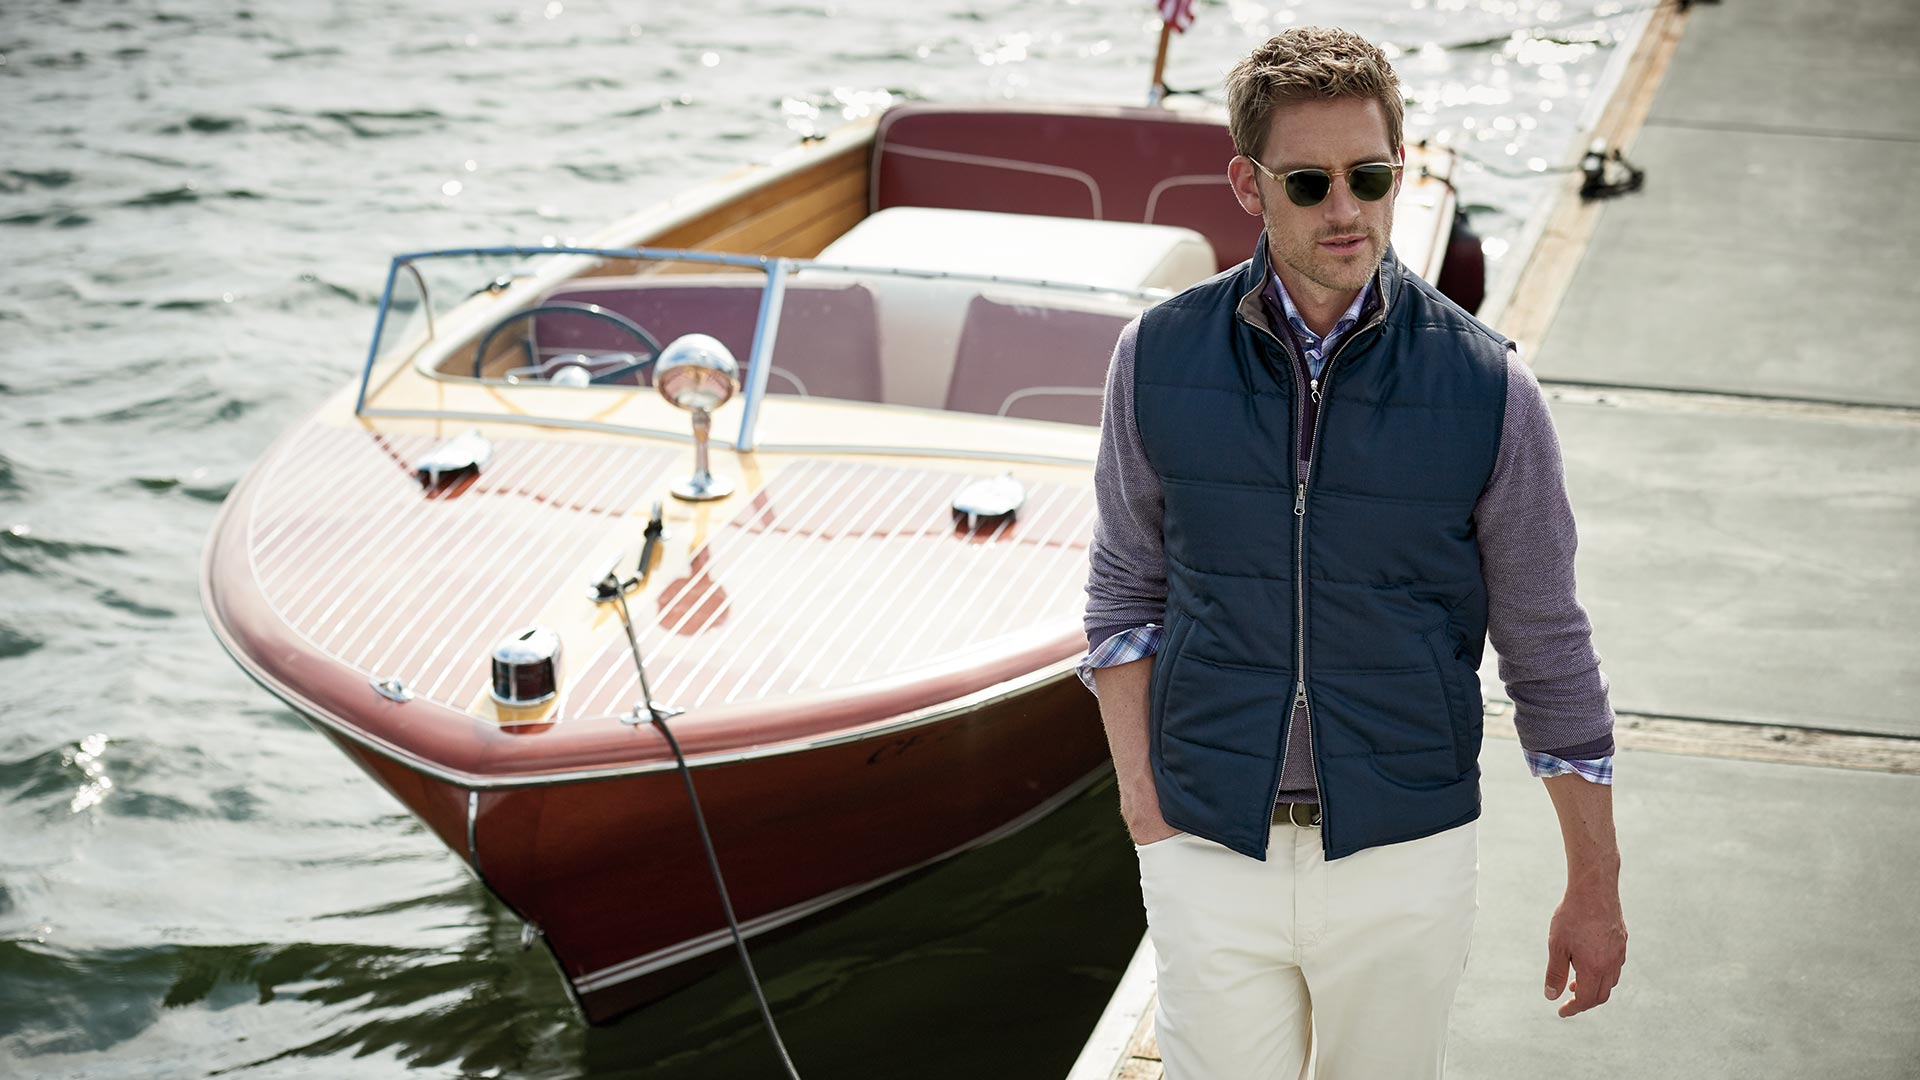 Image of Man Walking Away From Boat Wearing Peter Millar Clothing